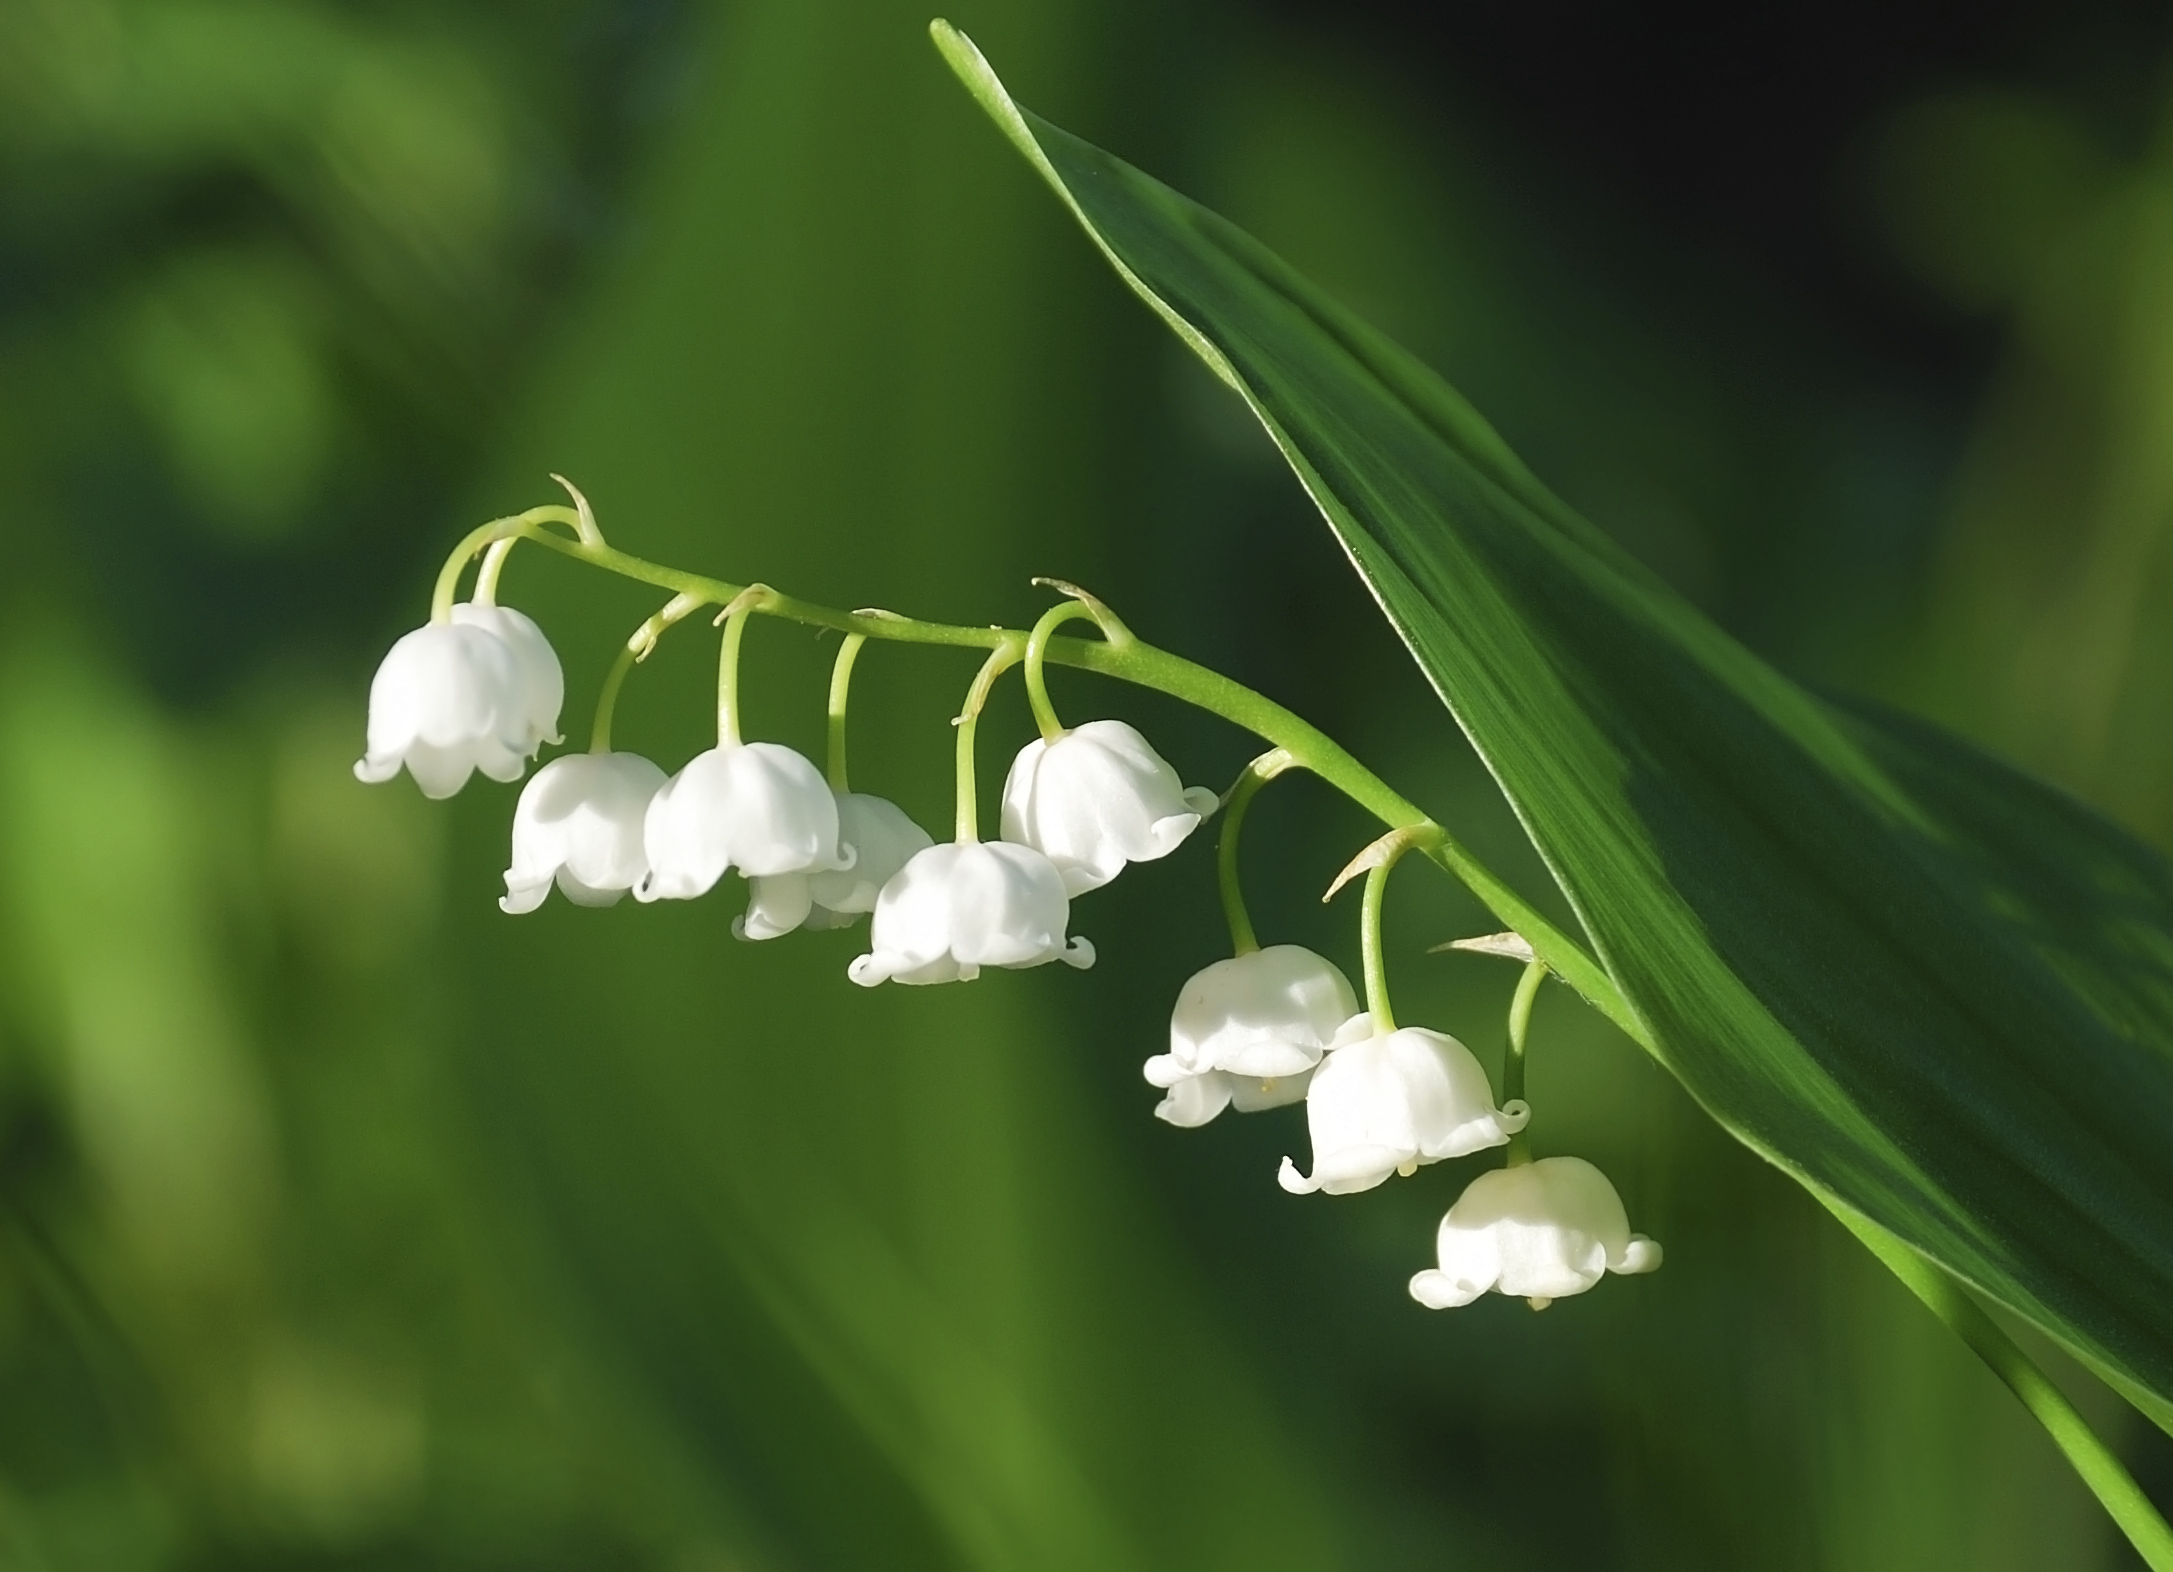 Amazing Lily Of The Valley Pictures & Backgrounds